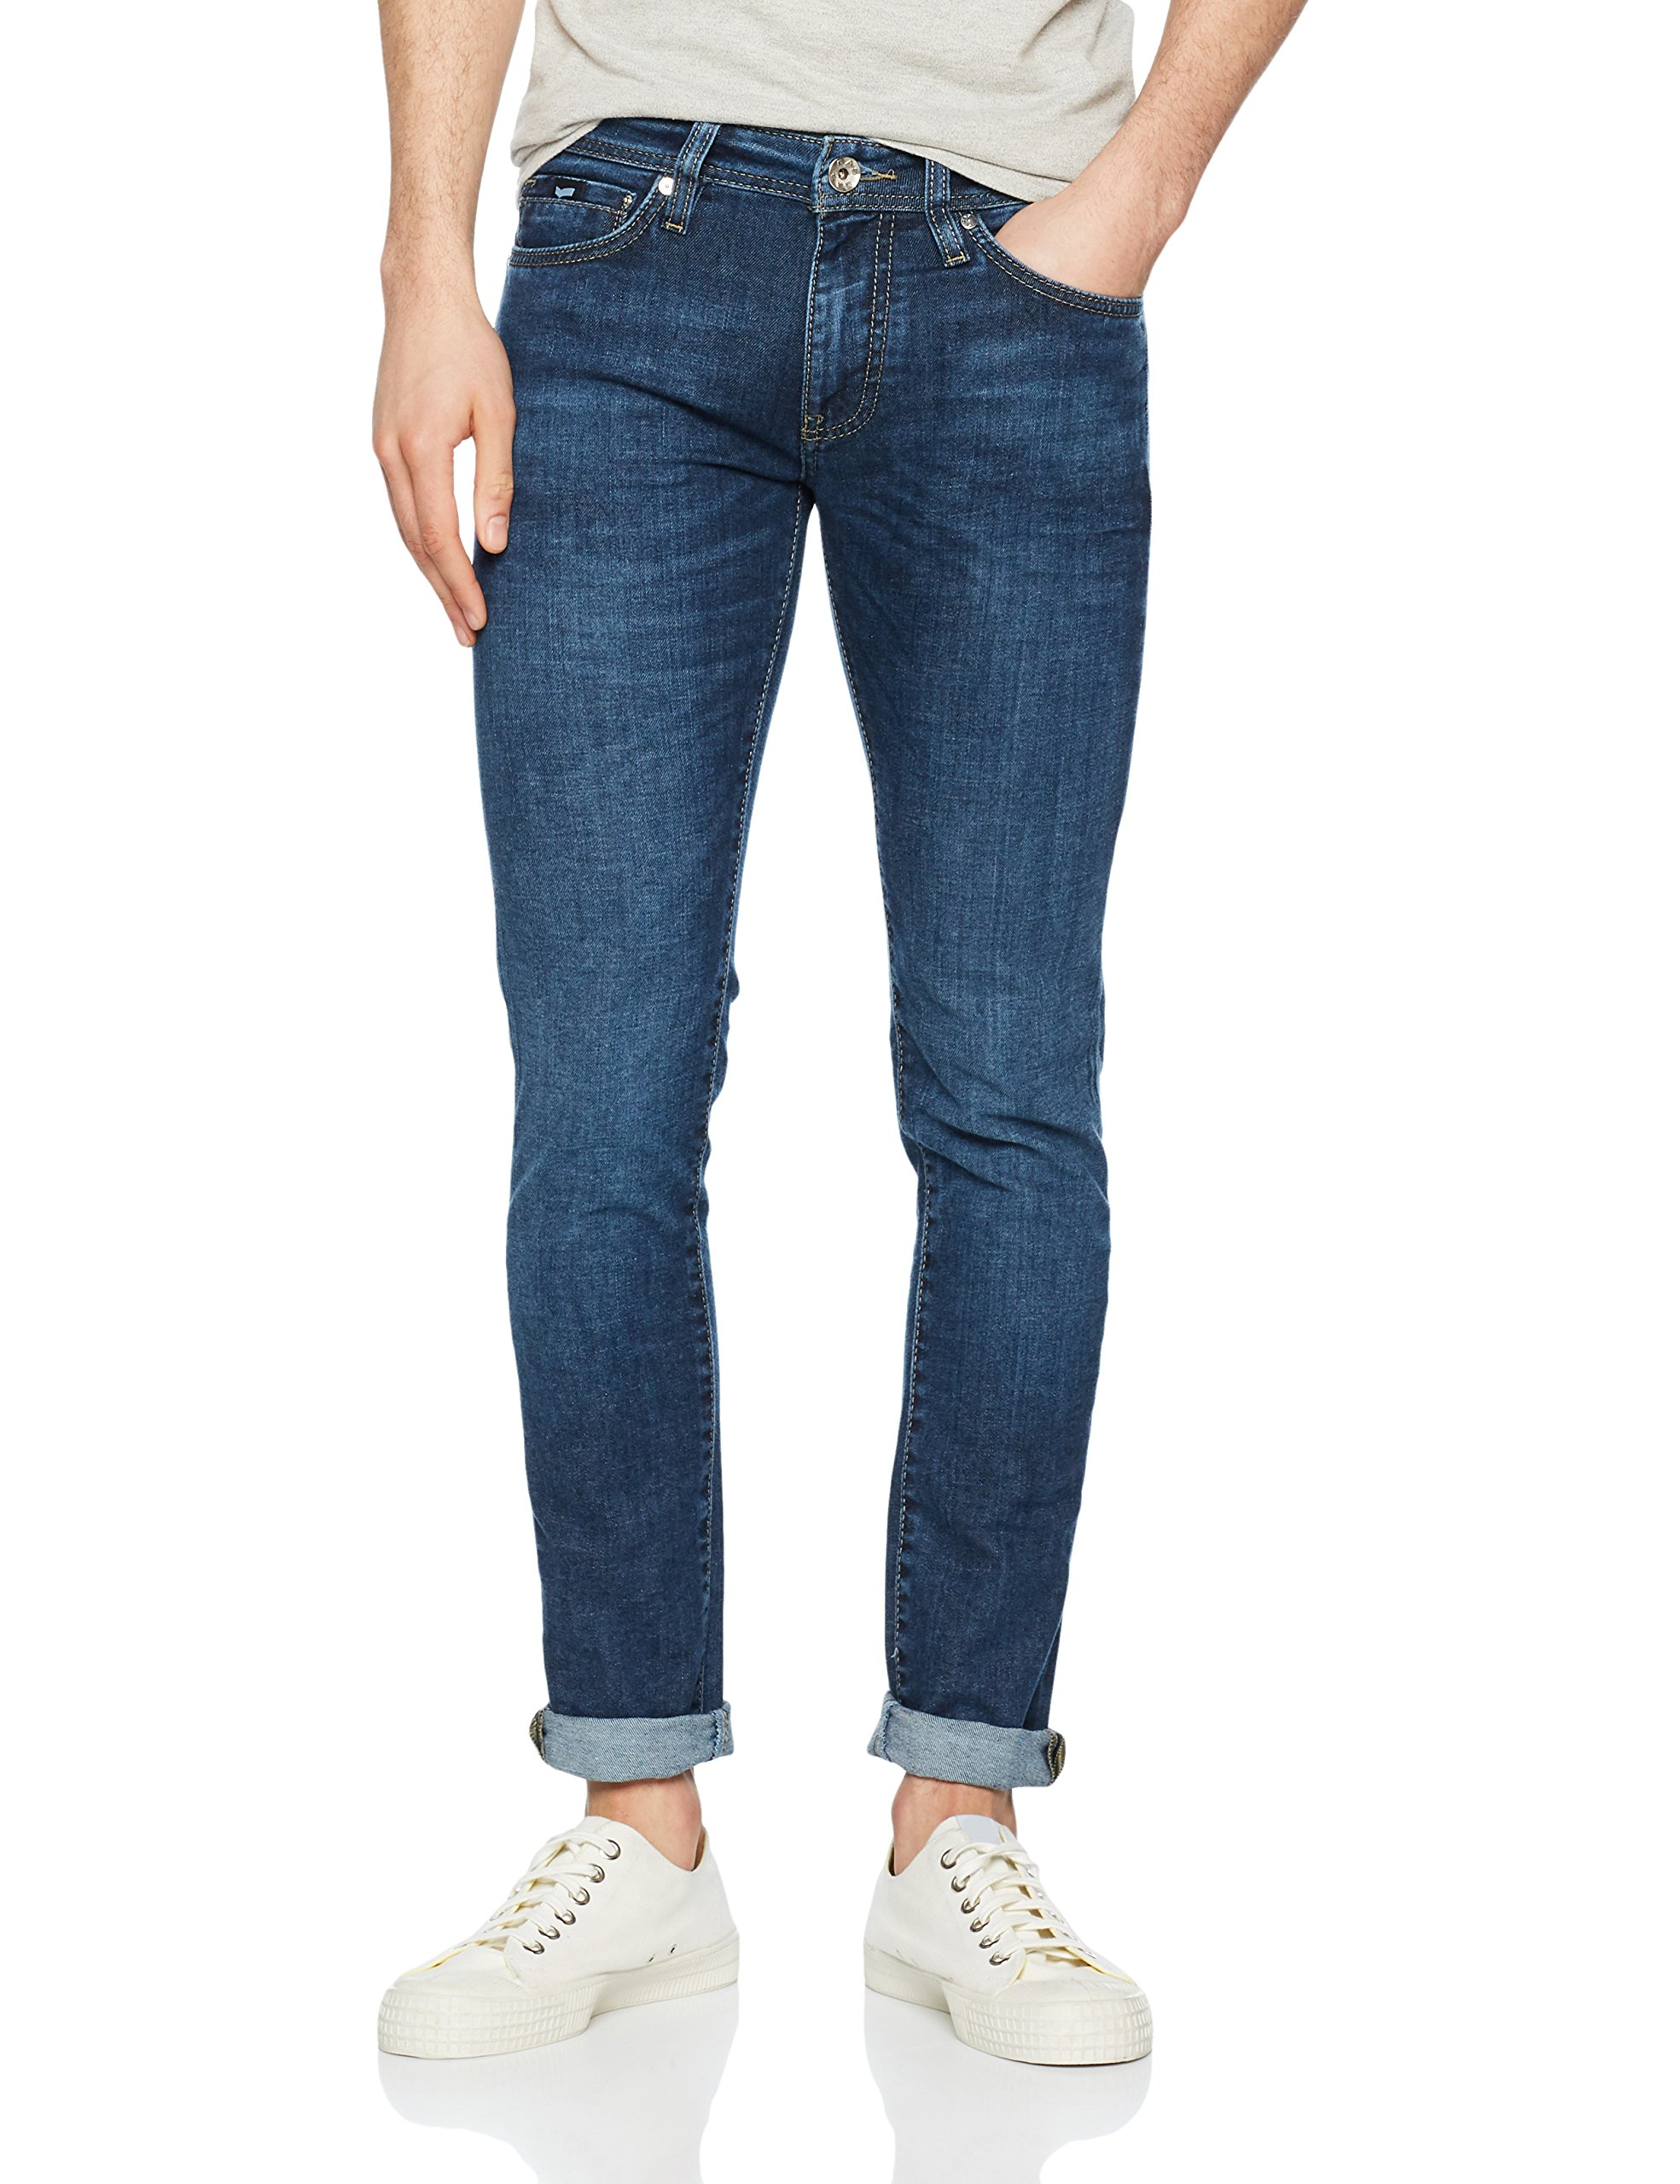 Gas Jean Wk13Taille SkinnyBleu Sax Zip Homme Fabricant 31 QxrdWoeBC